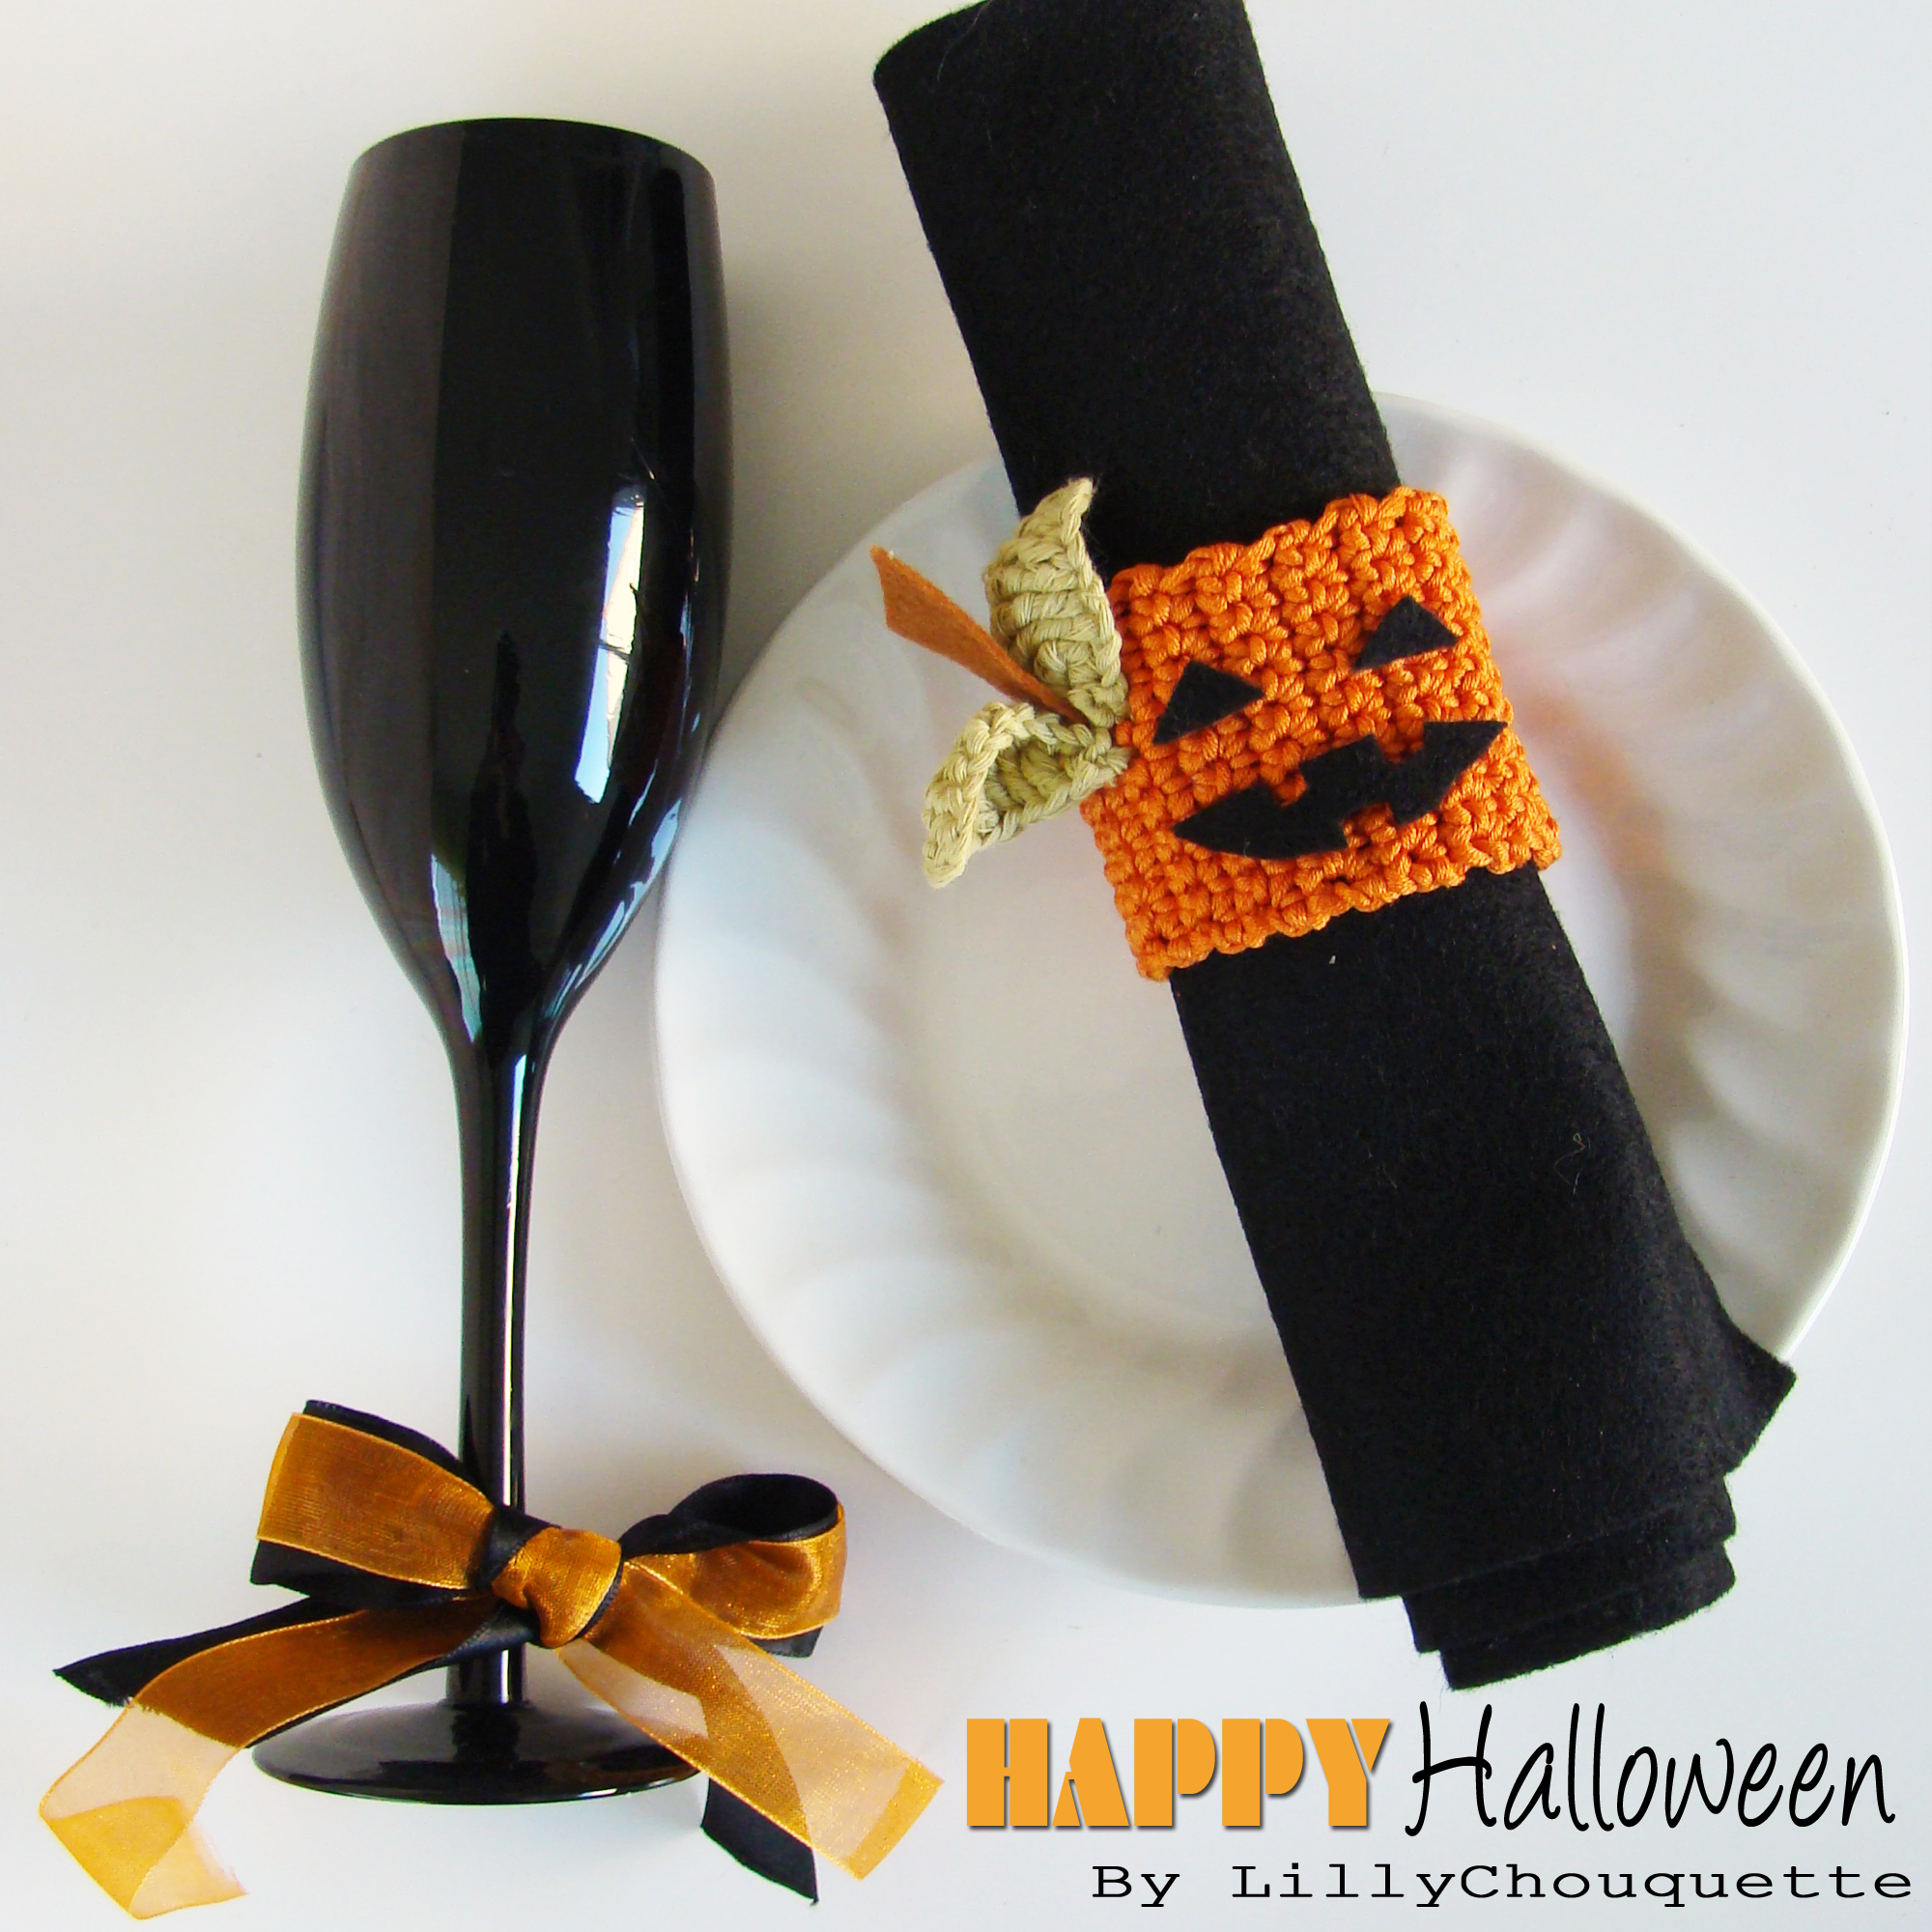 Tuto diy id e d co halloween au crochet lilly chouquette bloggueuse cr ative - Tuto deco halloween ...